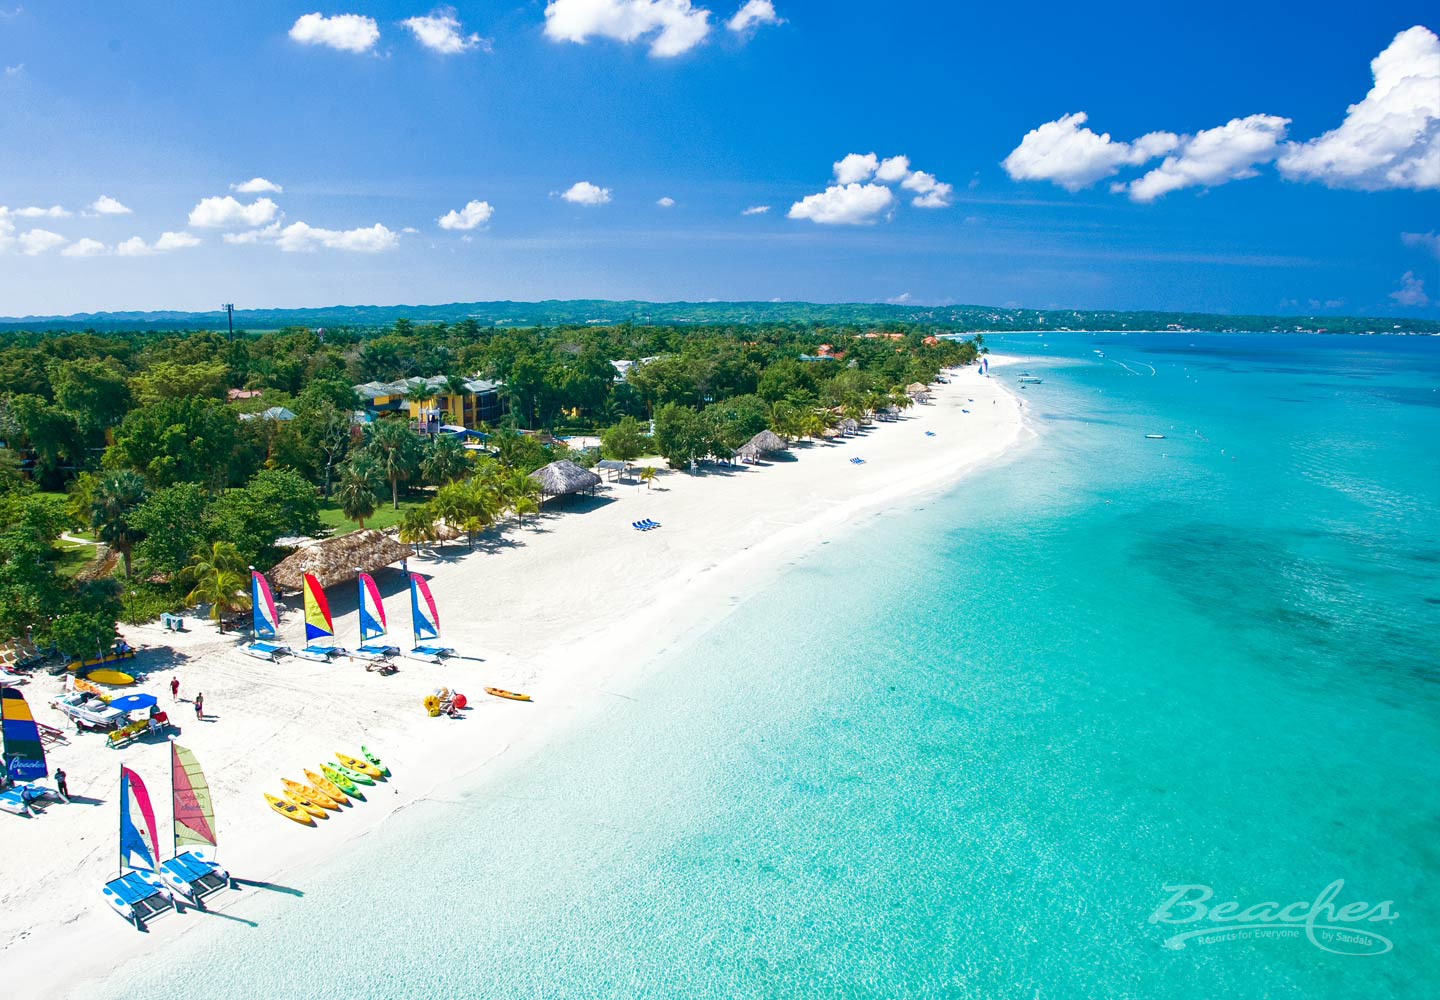 Travel Agency All-Inclusive Resort Beaches Negril 003